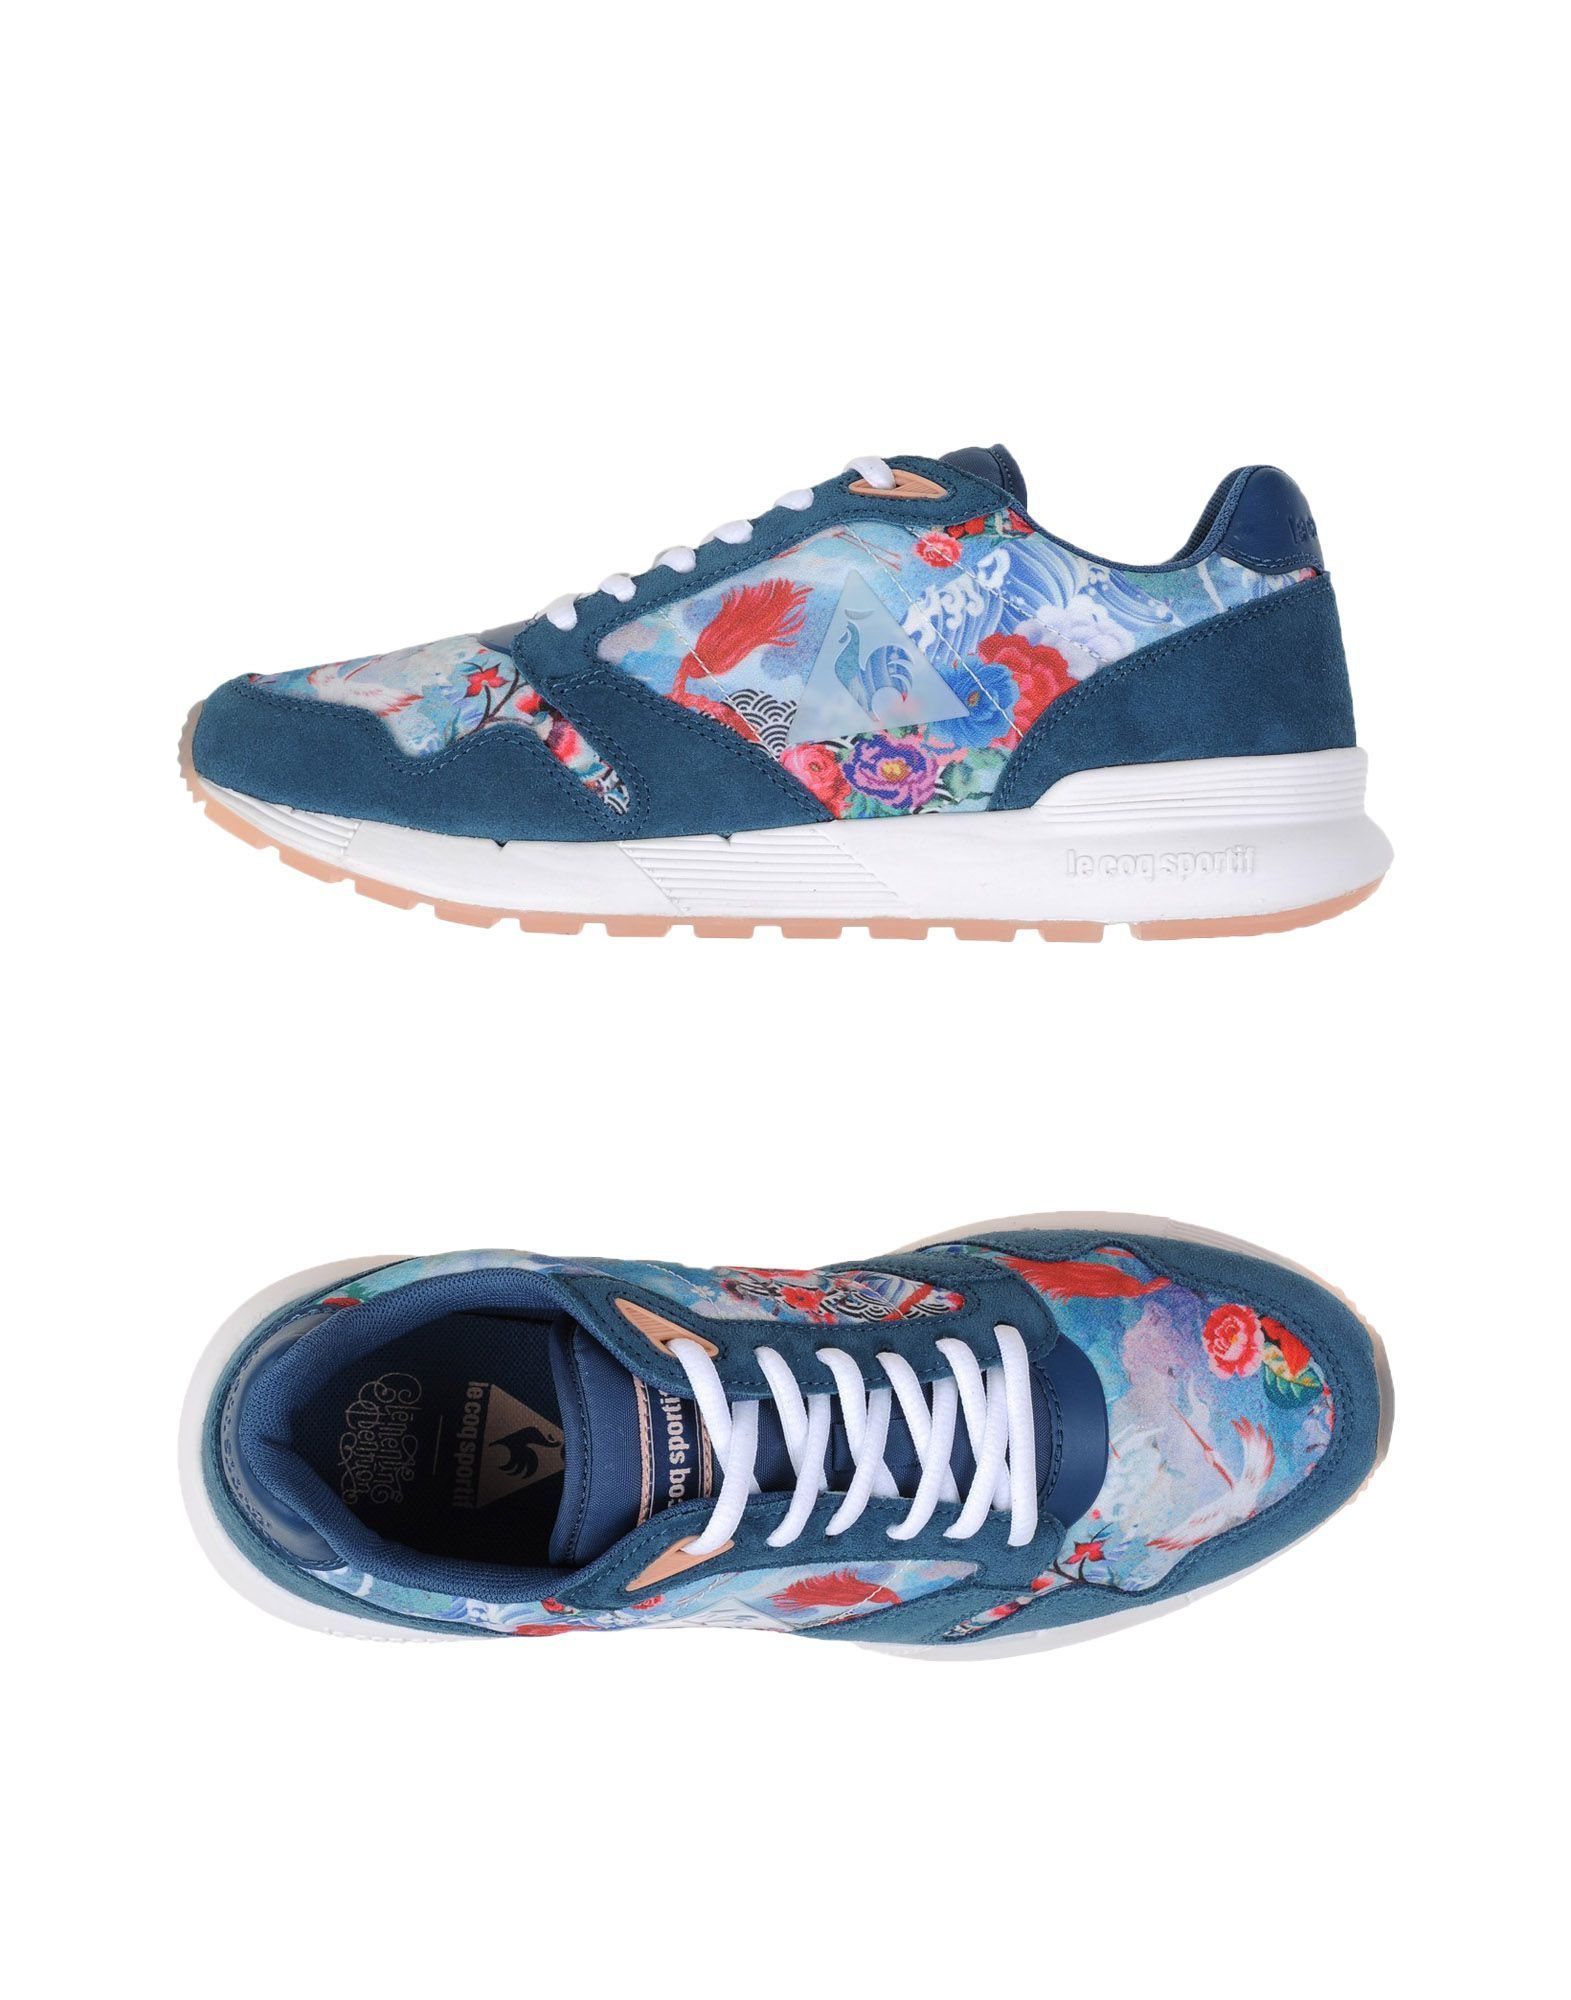 OMEGA X W PATCHWORK - FOOTWEAR - Low-tops & sneakers Le Coq Sportif